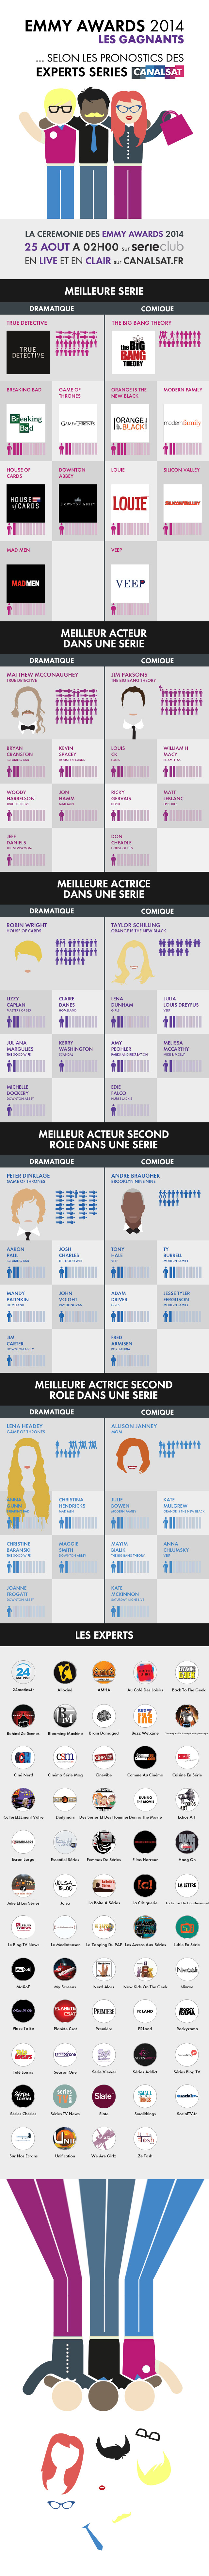 Infographie Emmy Awards